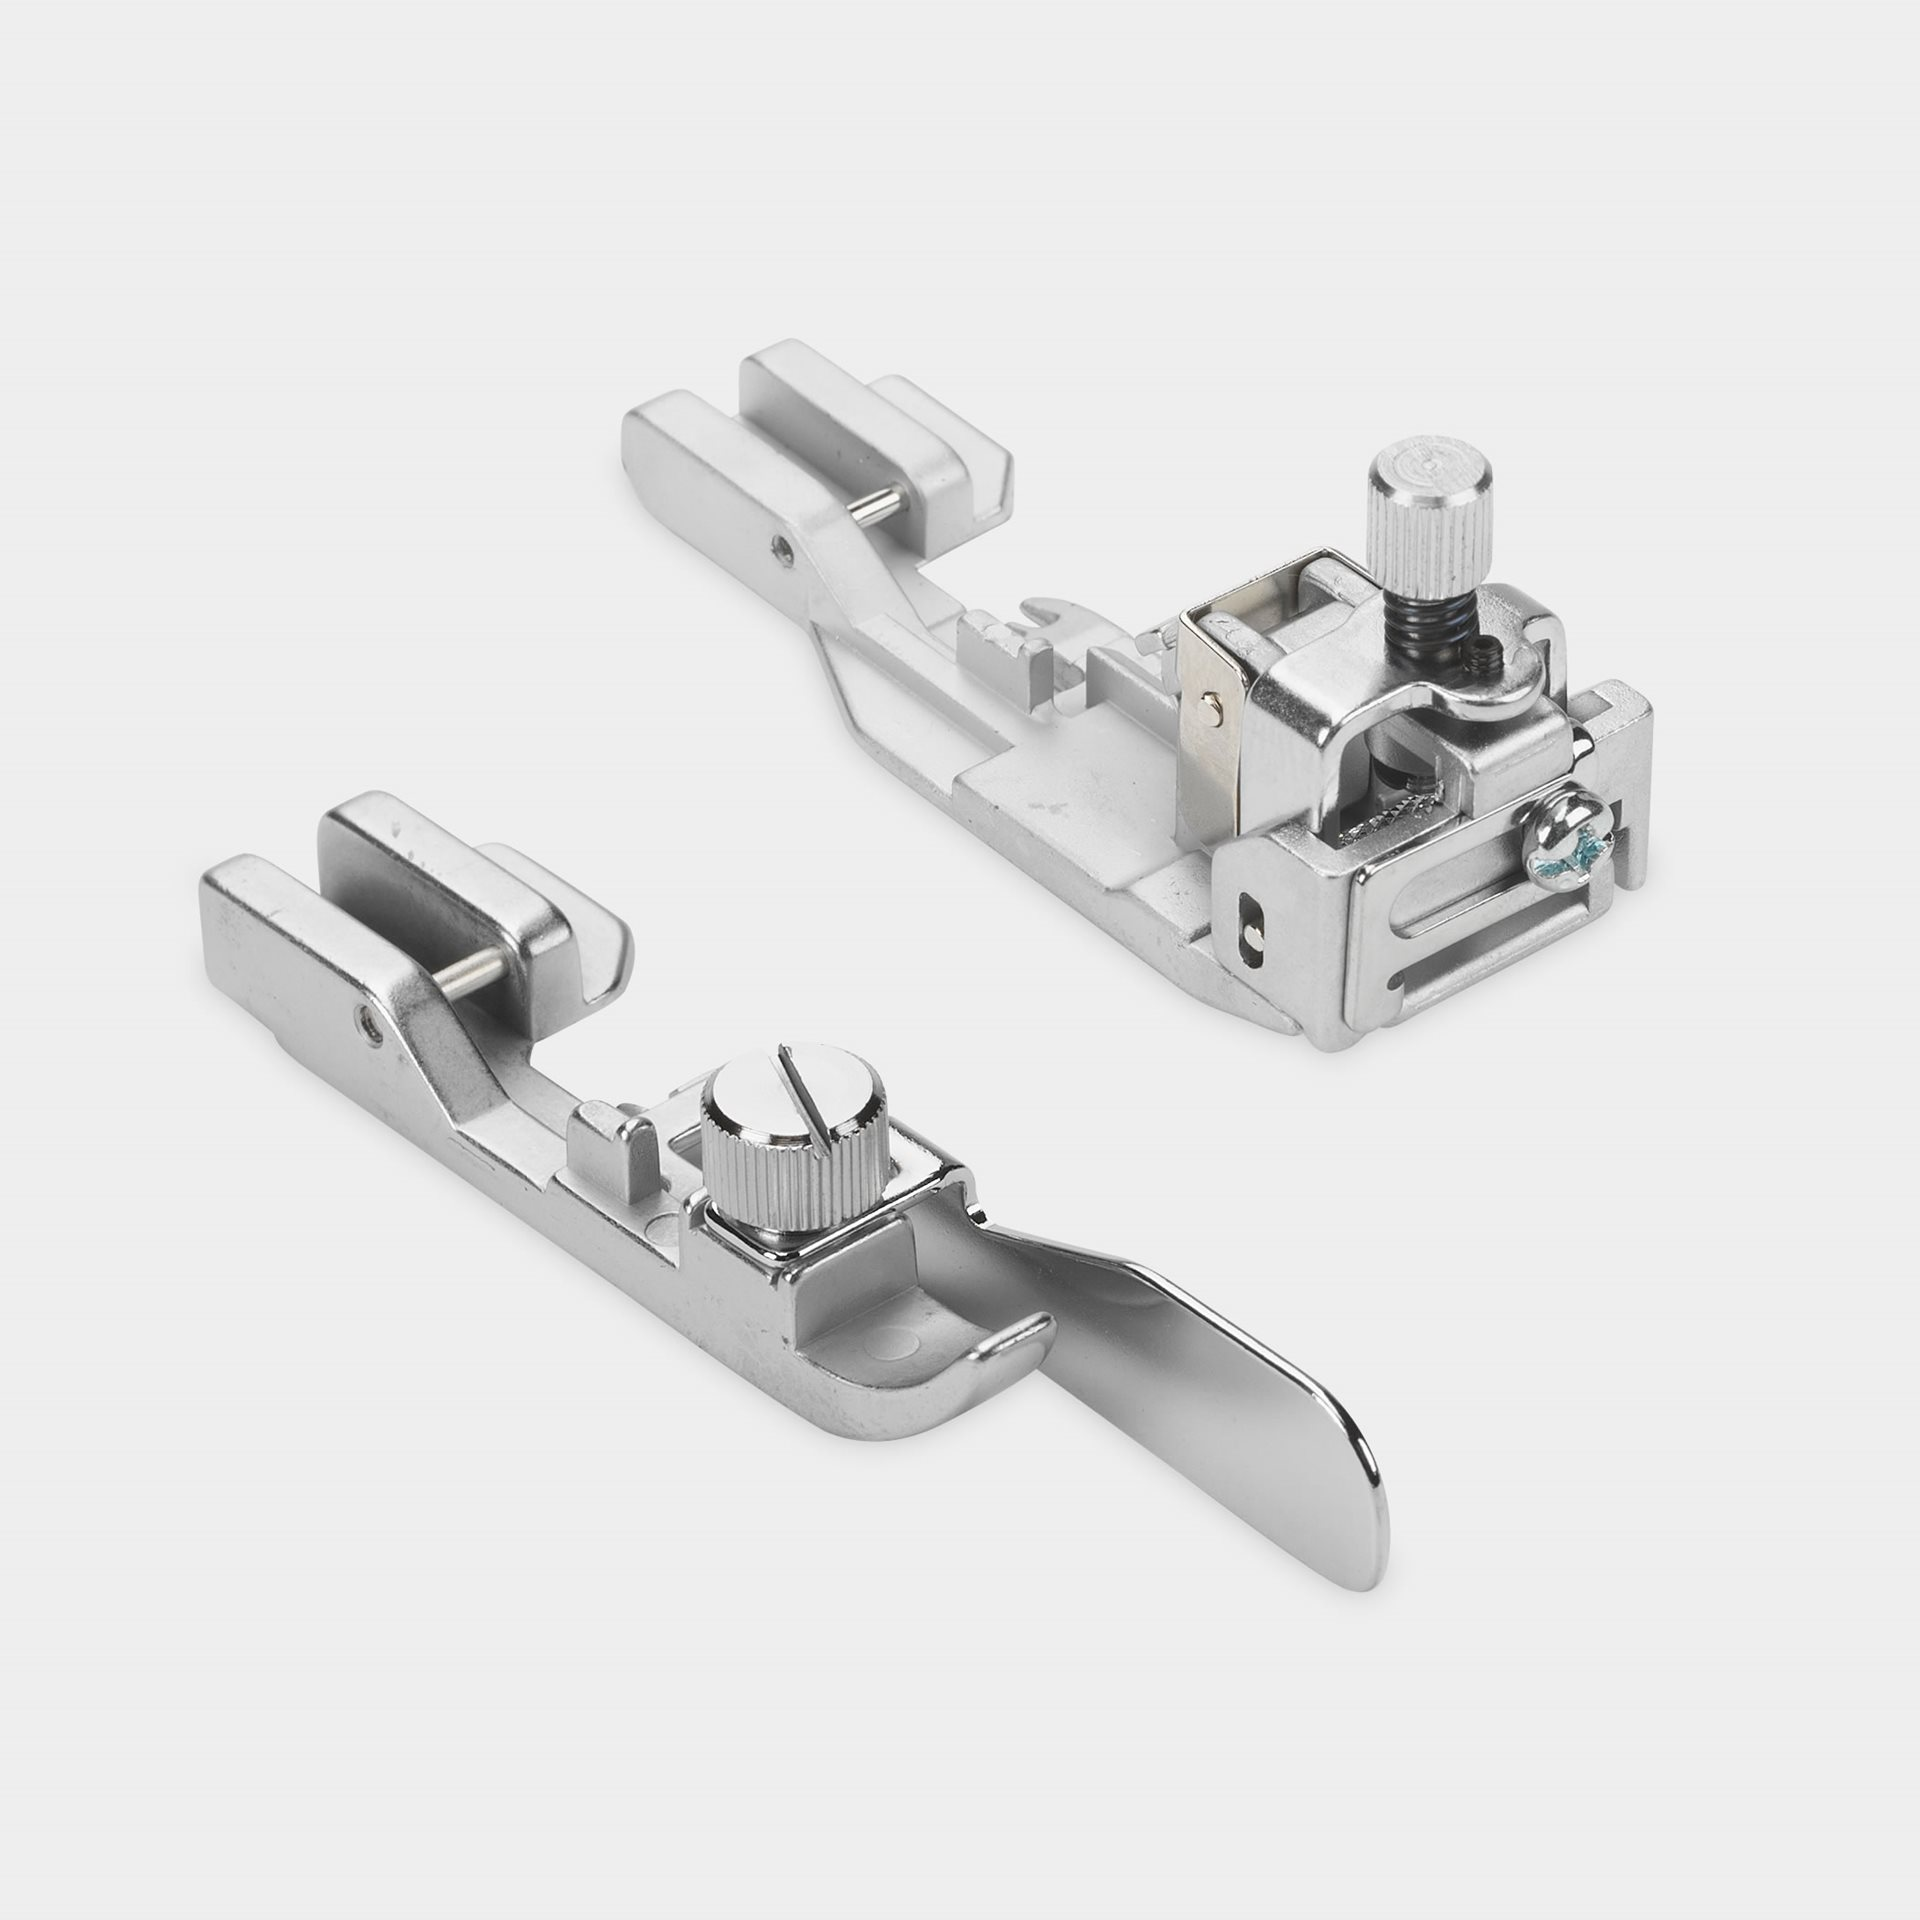 Elasticator foot and Blindstitch foot included as standard